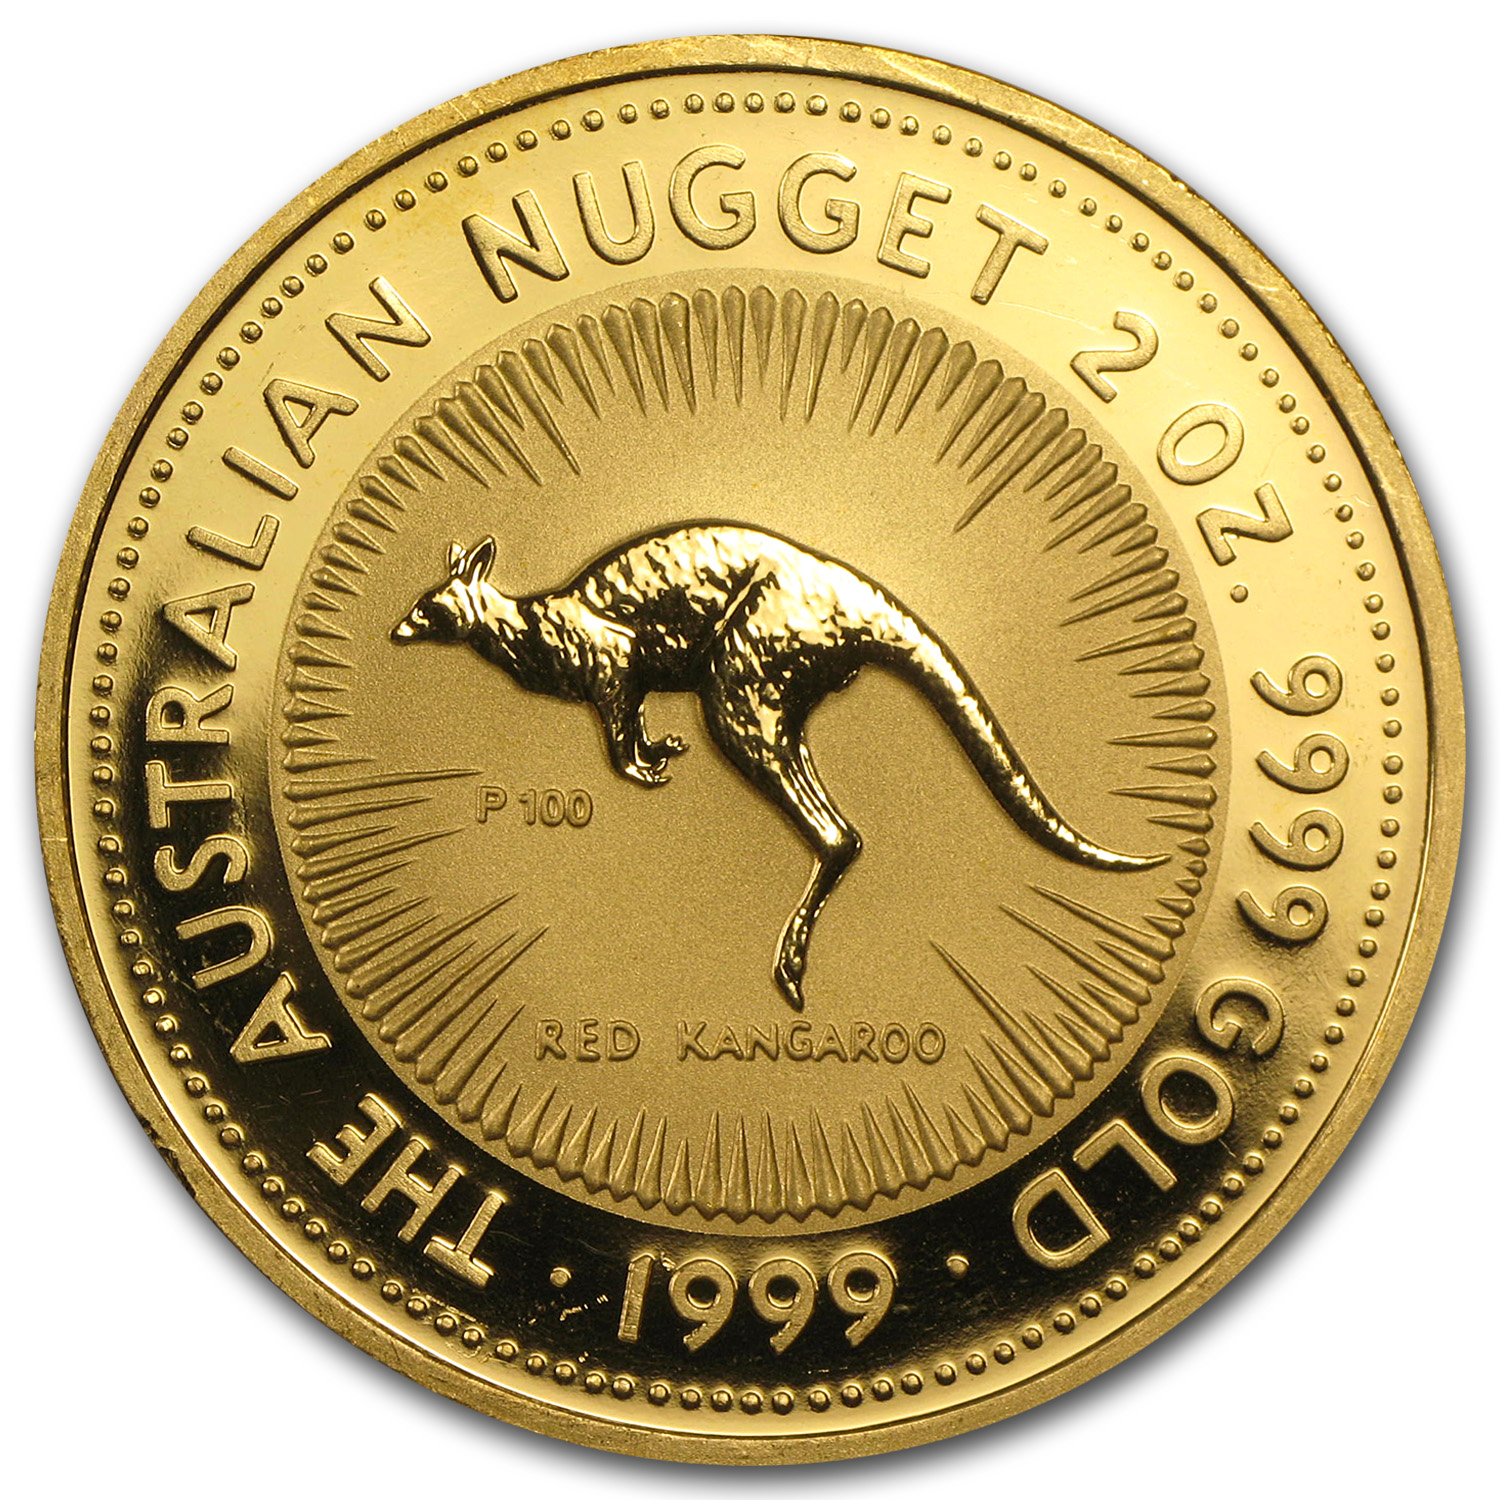 2 oz Australian Gold Kangaroo/Nugget (Light Abrasions)